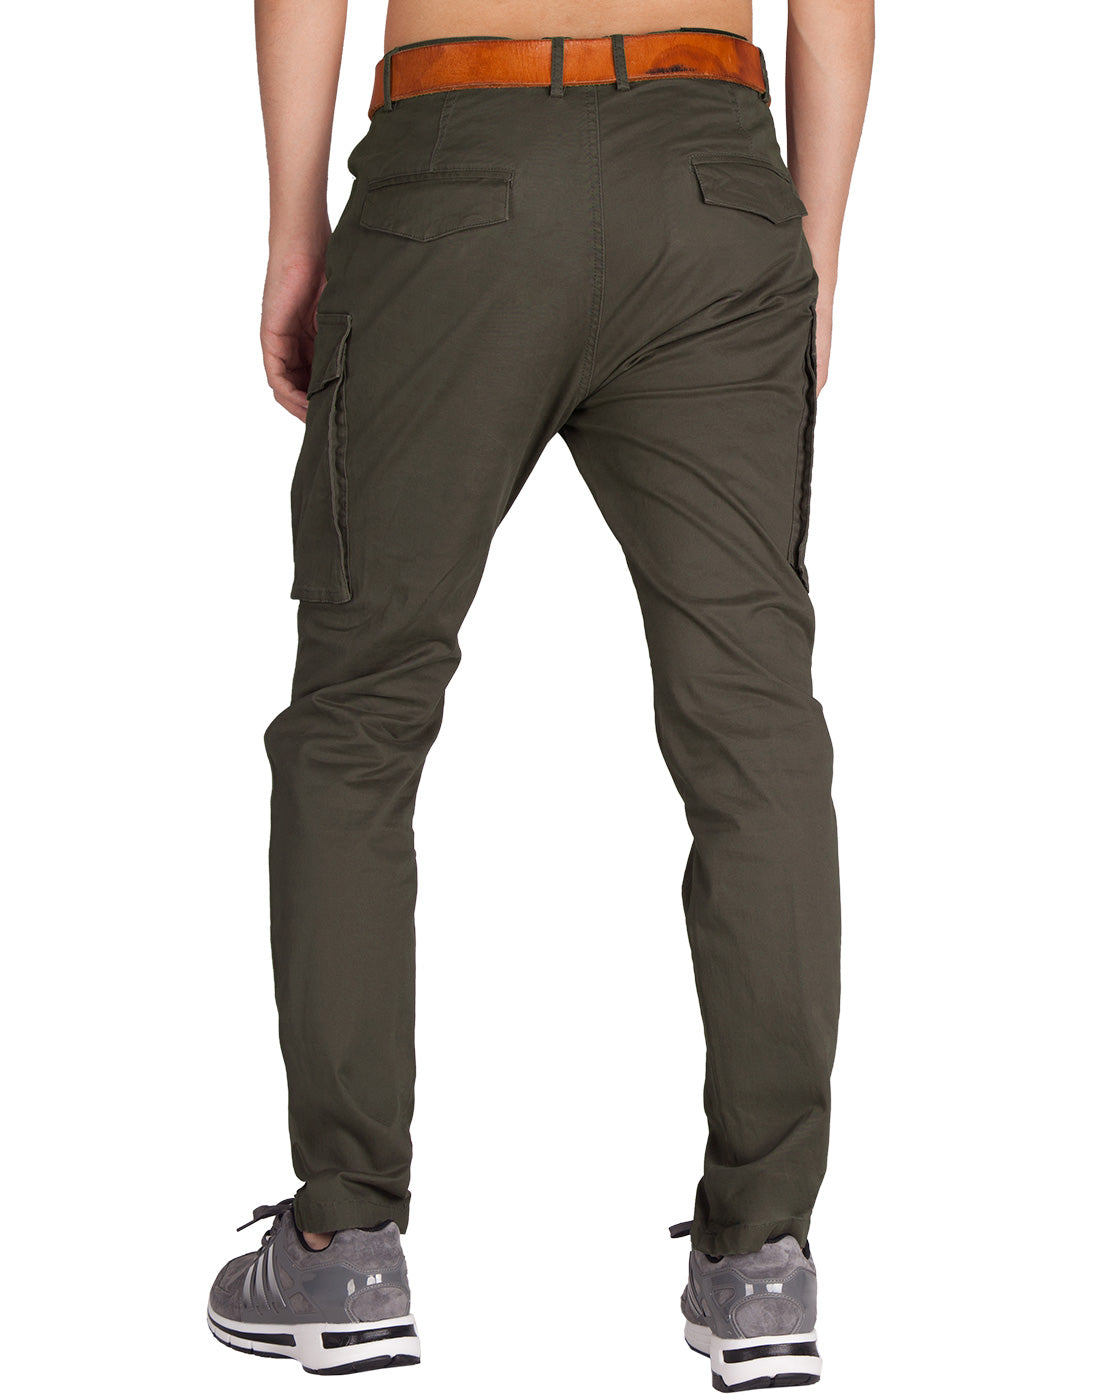 Man Cargo Pants Chocolate - italymorn